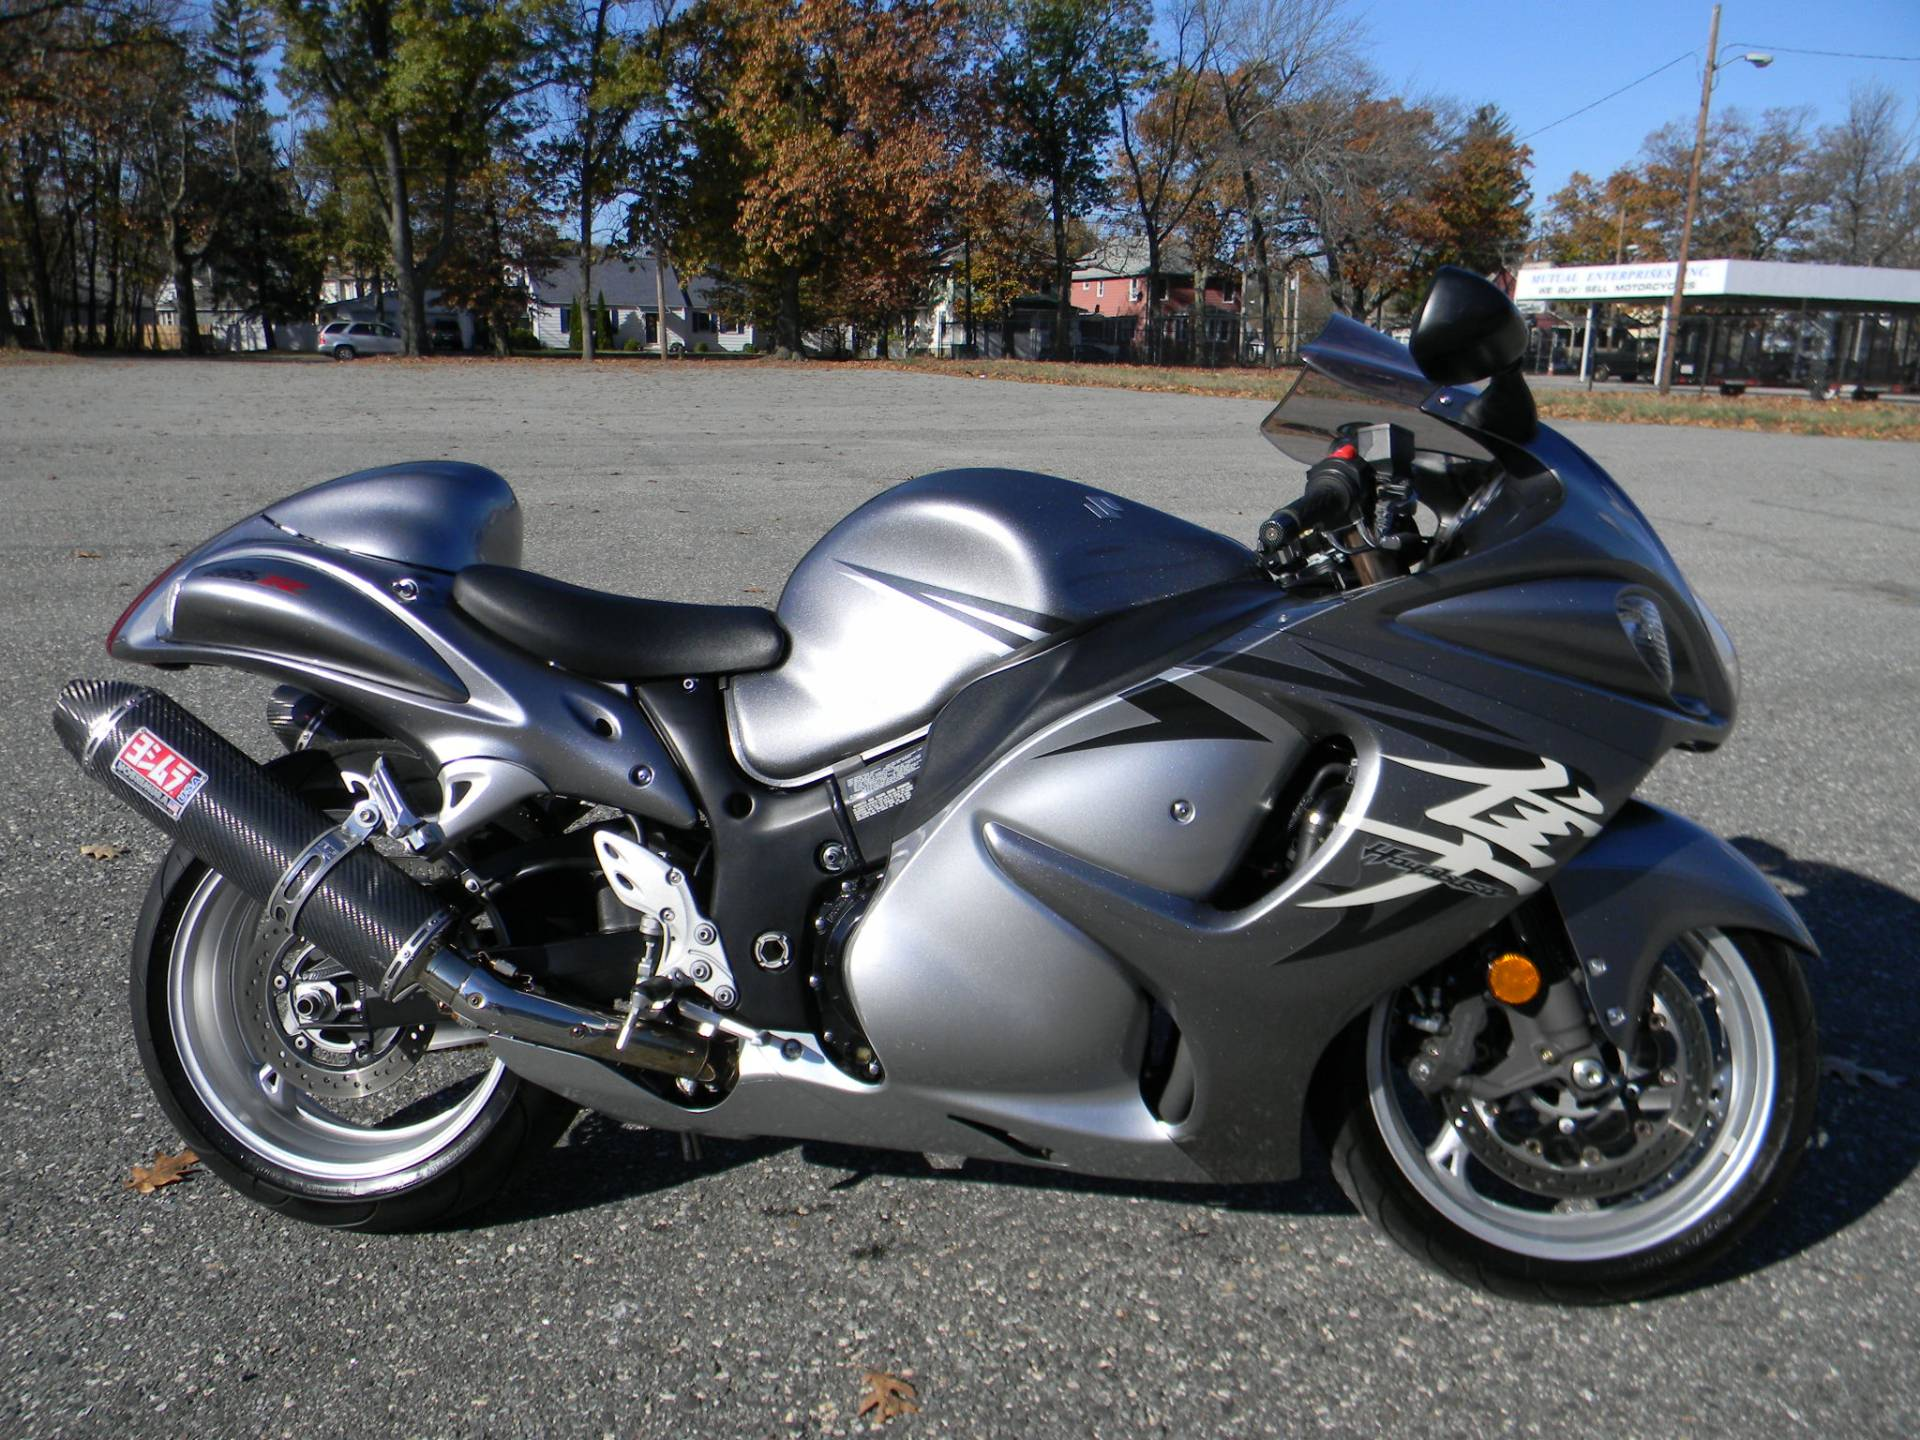 2009 Suzuki Hayabusa for sale 89599